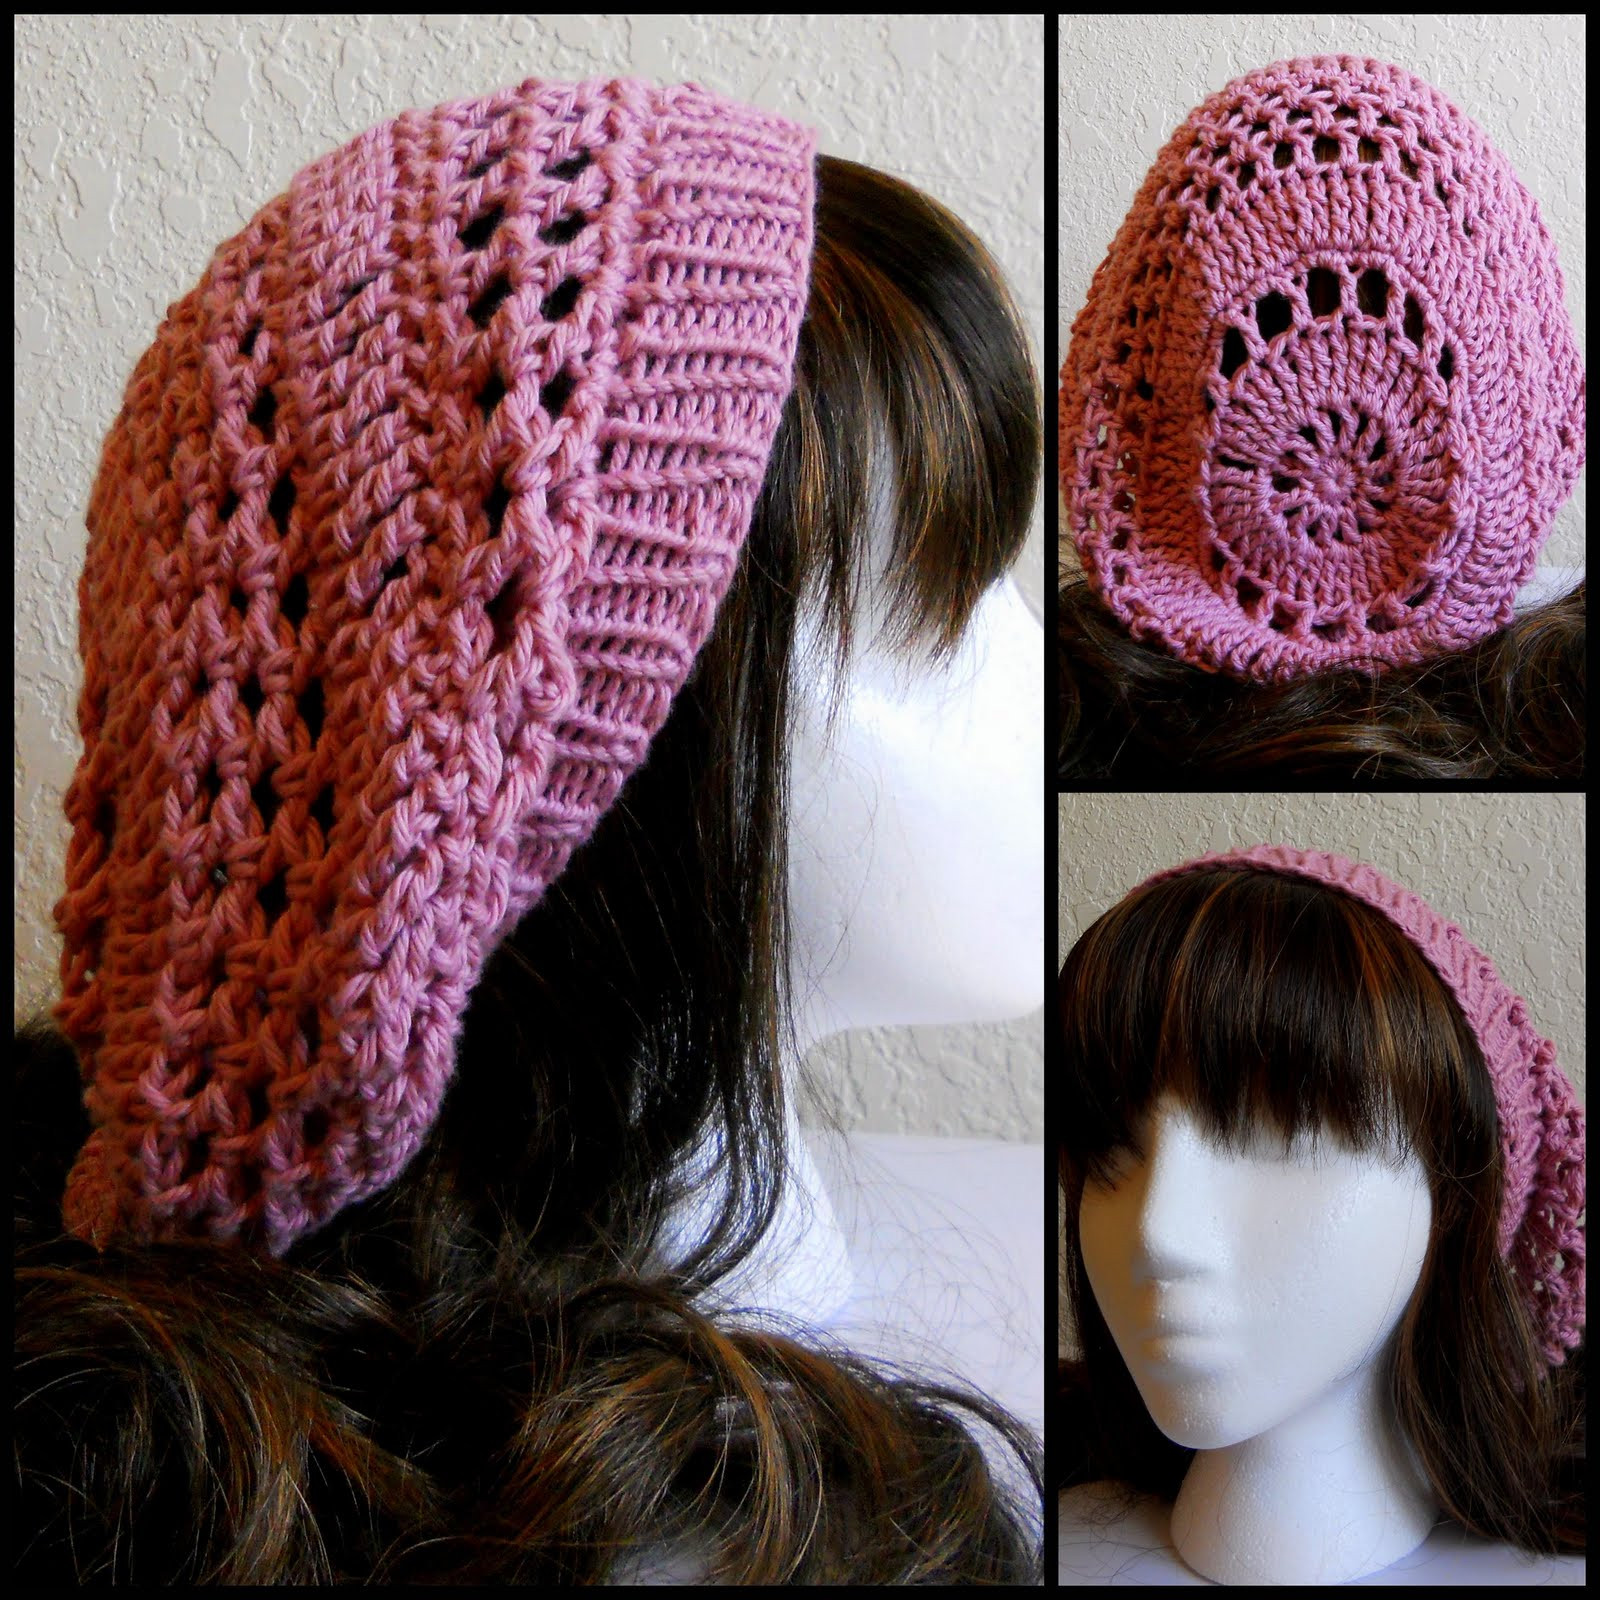 Summer Crochet Patterns Awesome the Strange Knitter Bination Summer Hat Of Wonderful 49 Pics Summer Crochet Patterns